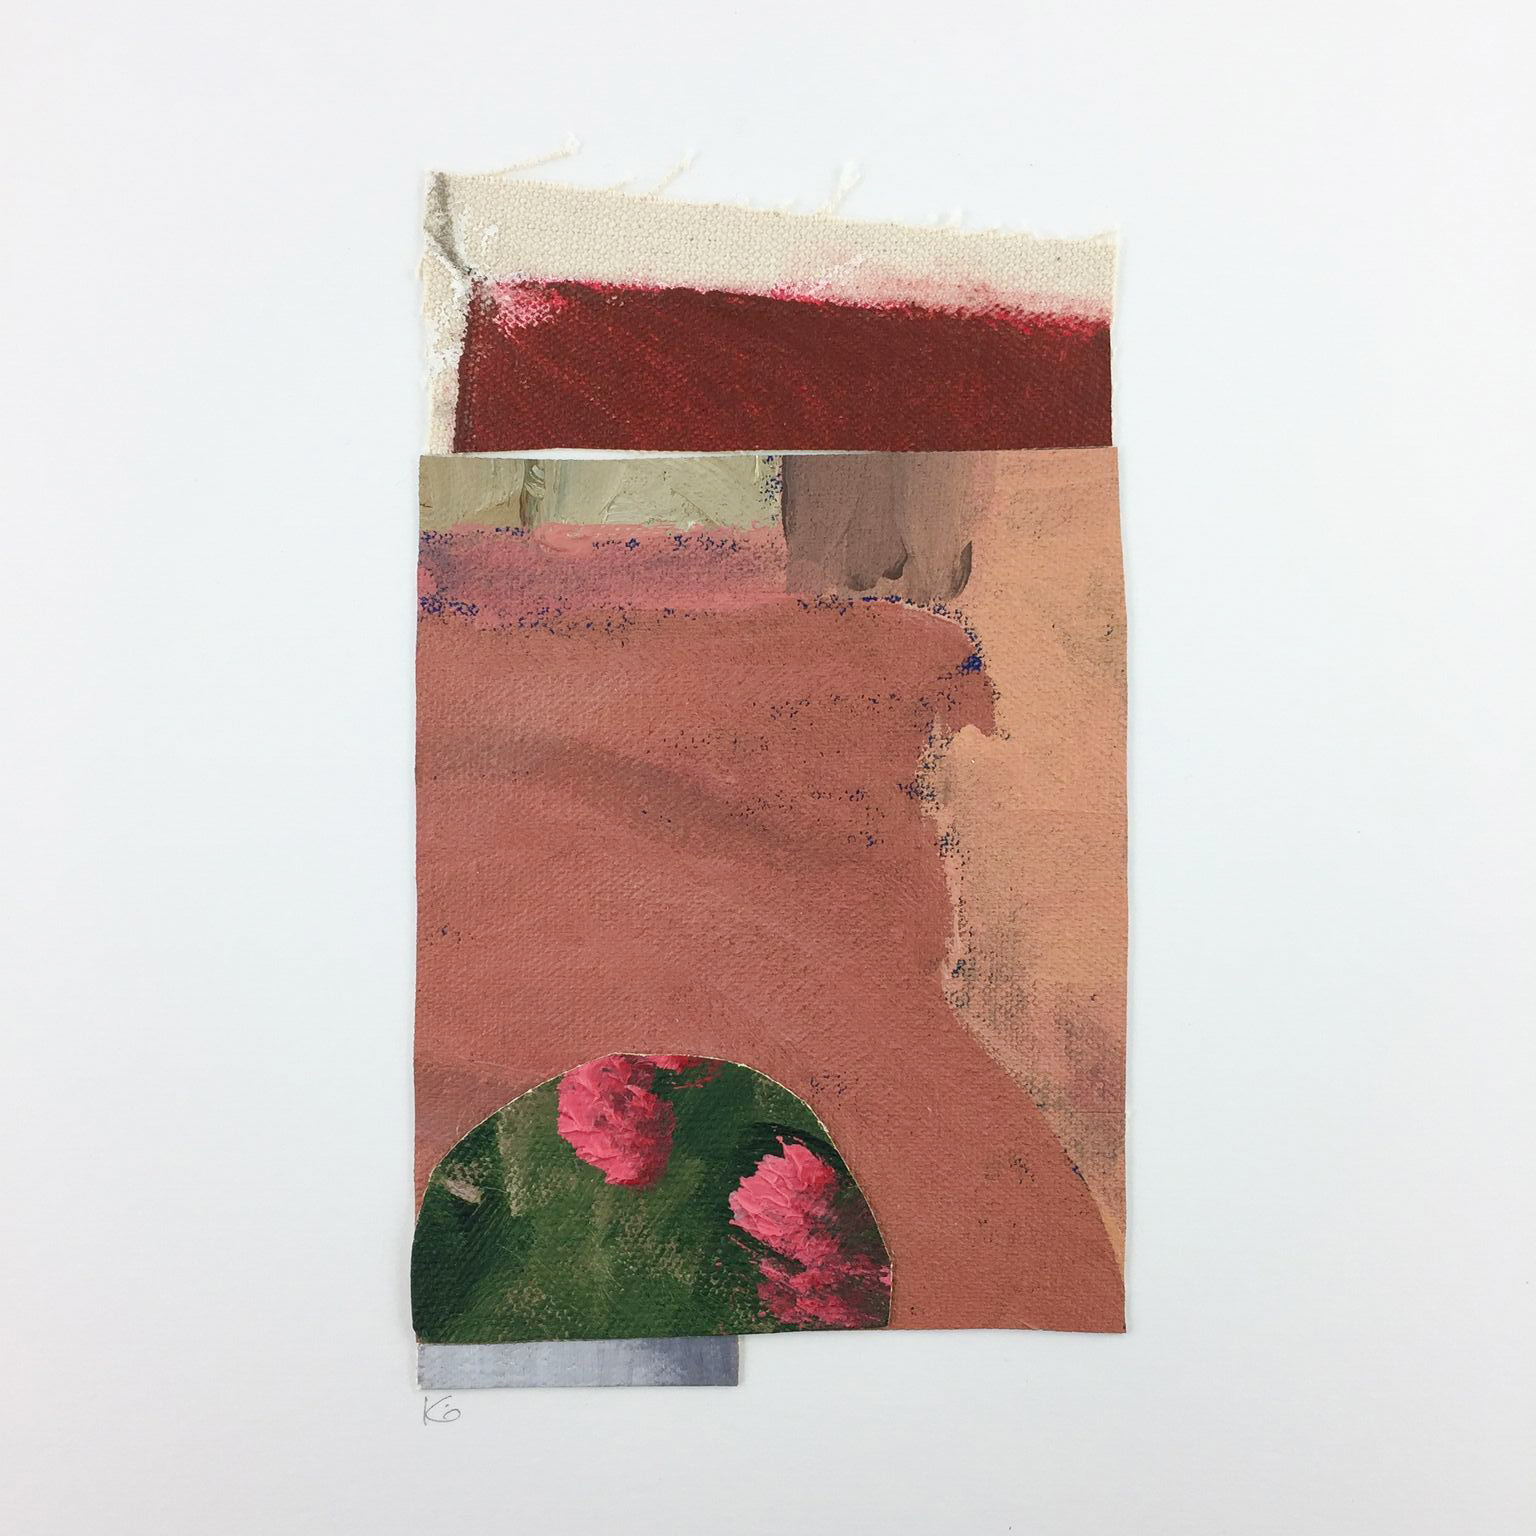 4.25 x 7 inches